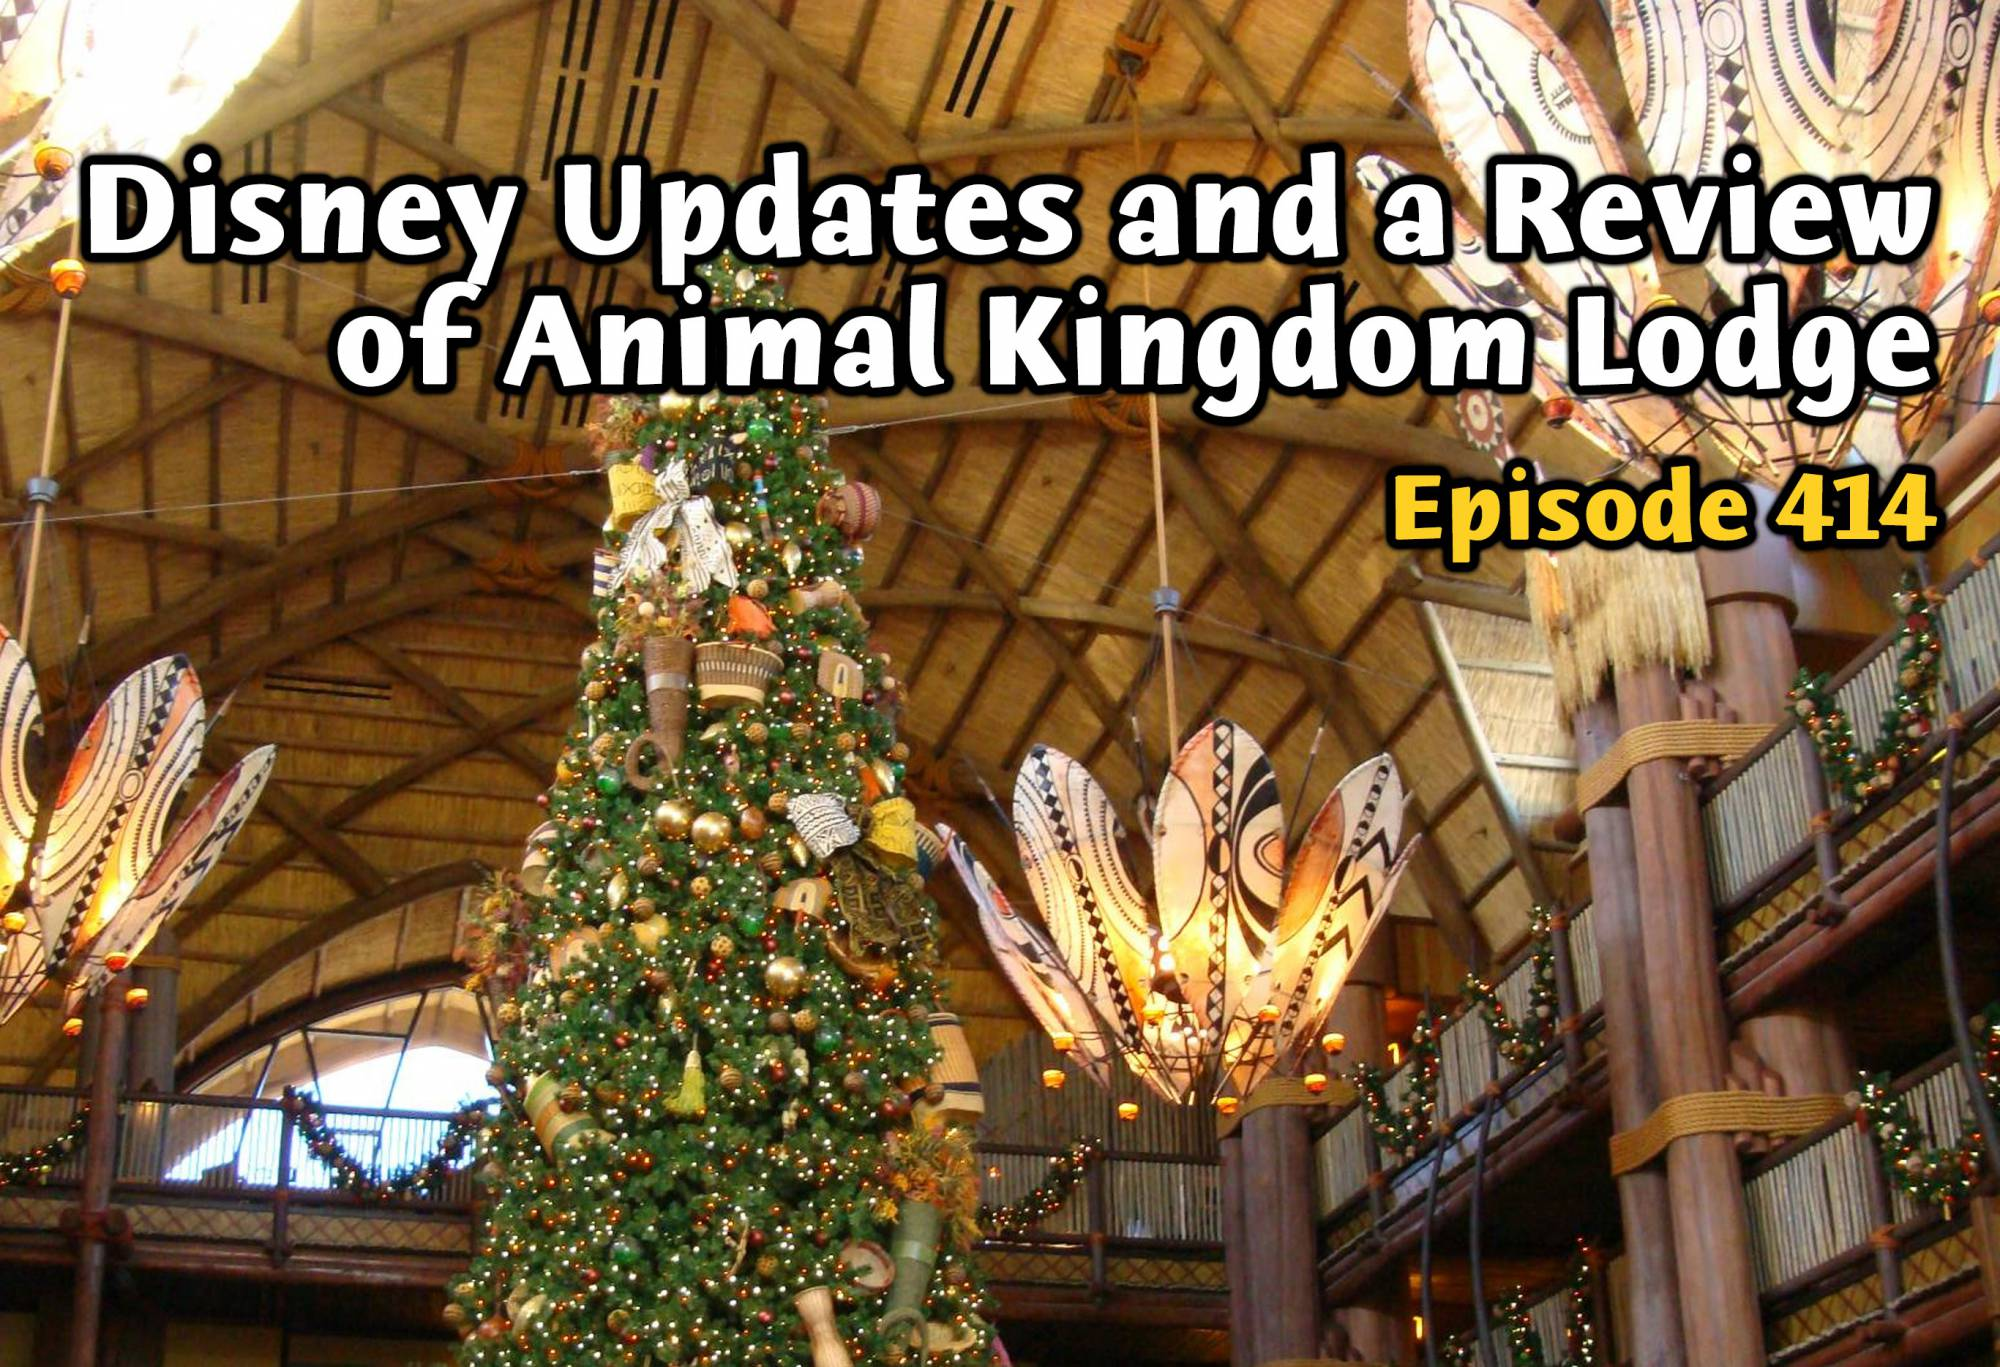 Disney Updates and Review of Animal Kingdom Lodge